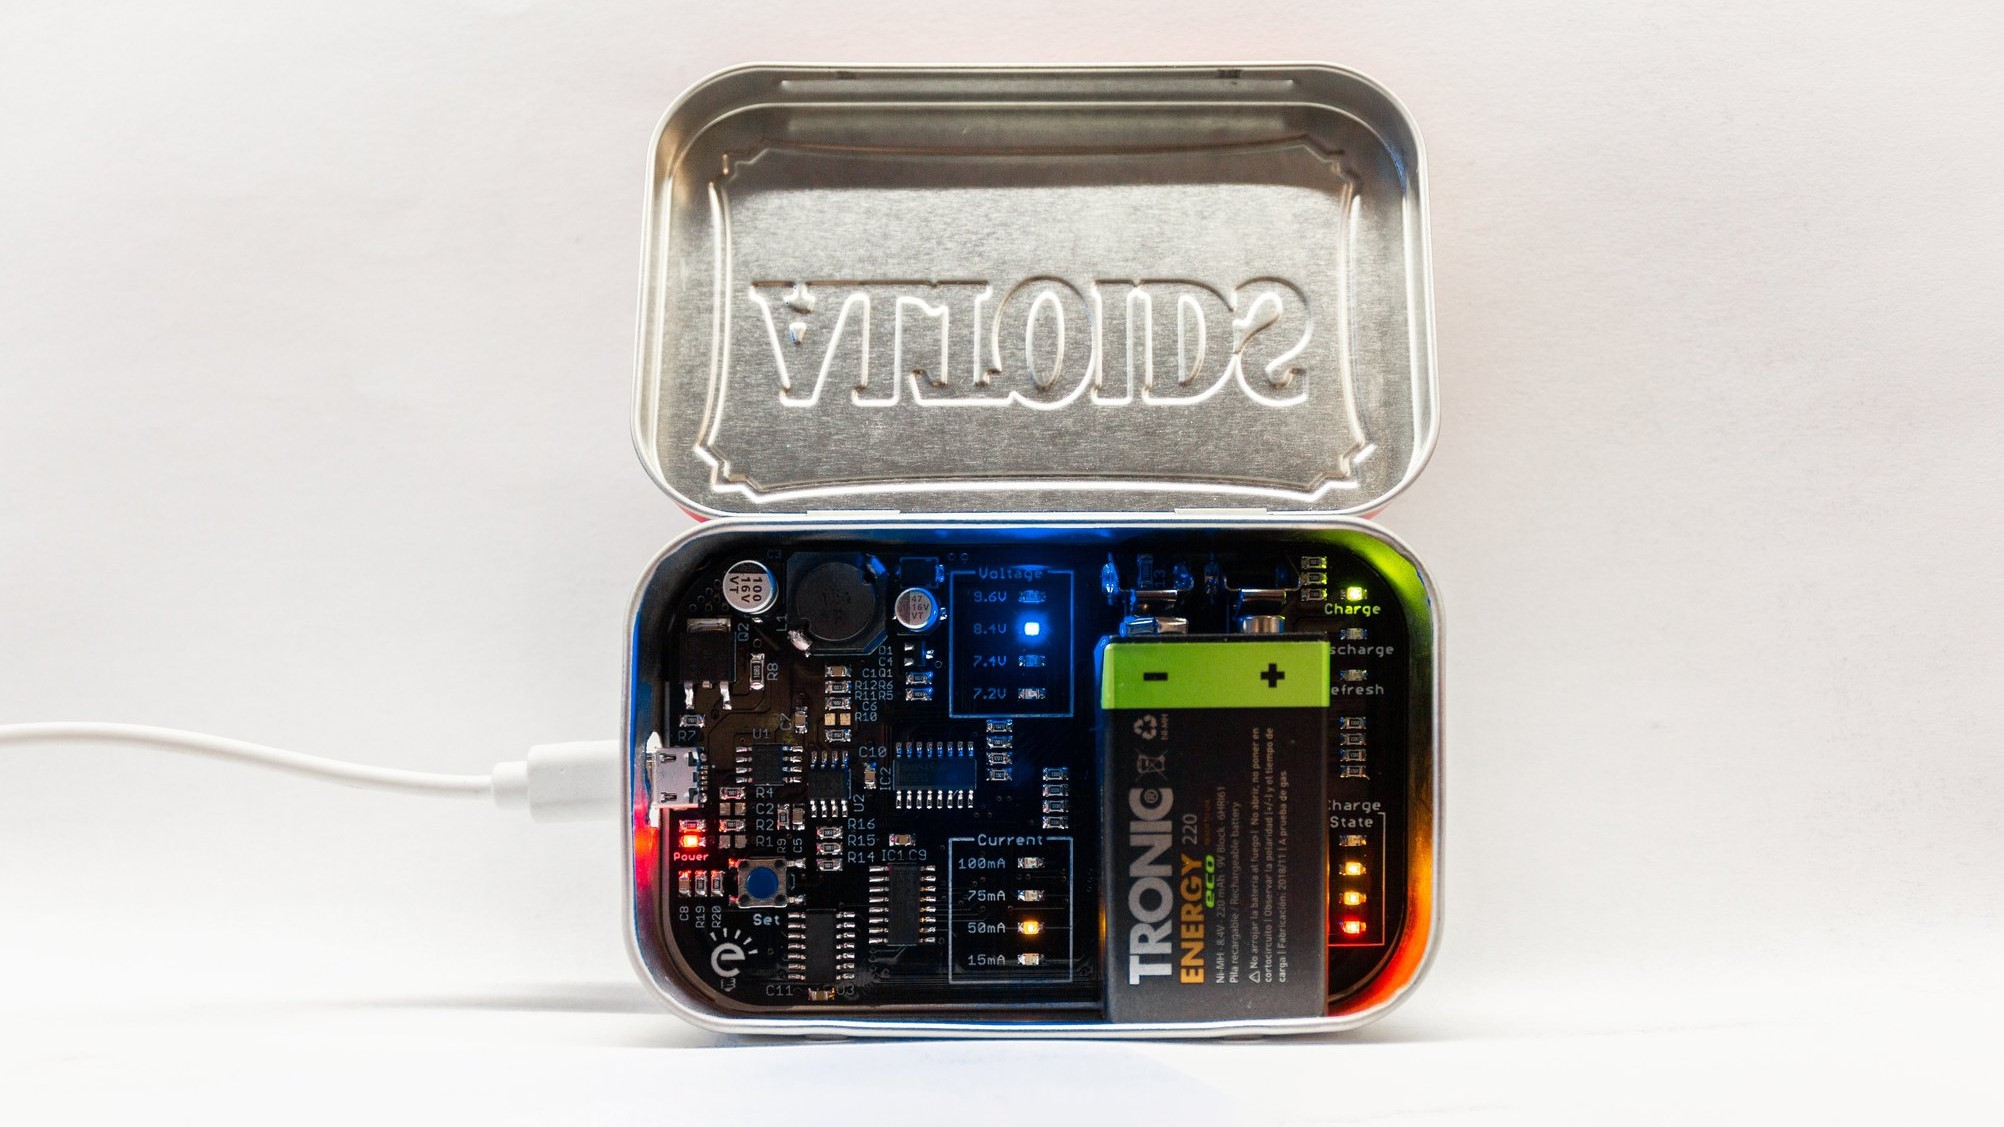 This MintyCharger Is Designed For All 9V PP3 Batteries In The Market